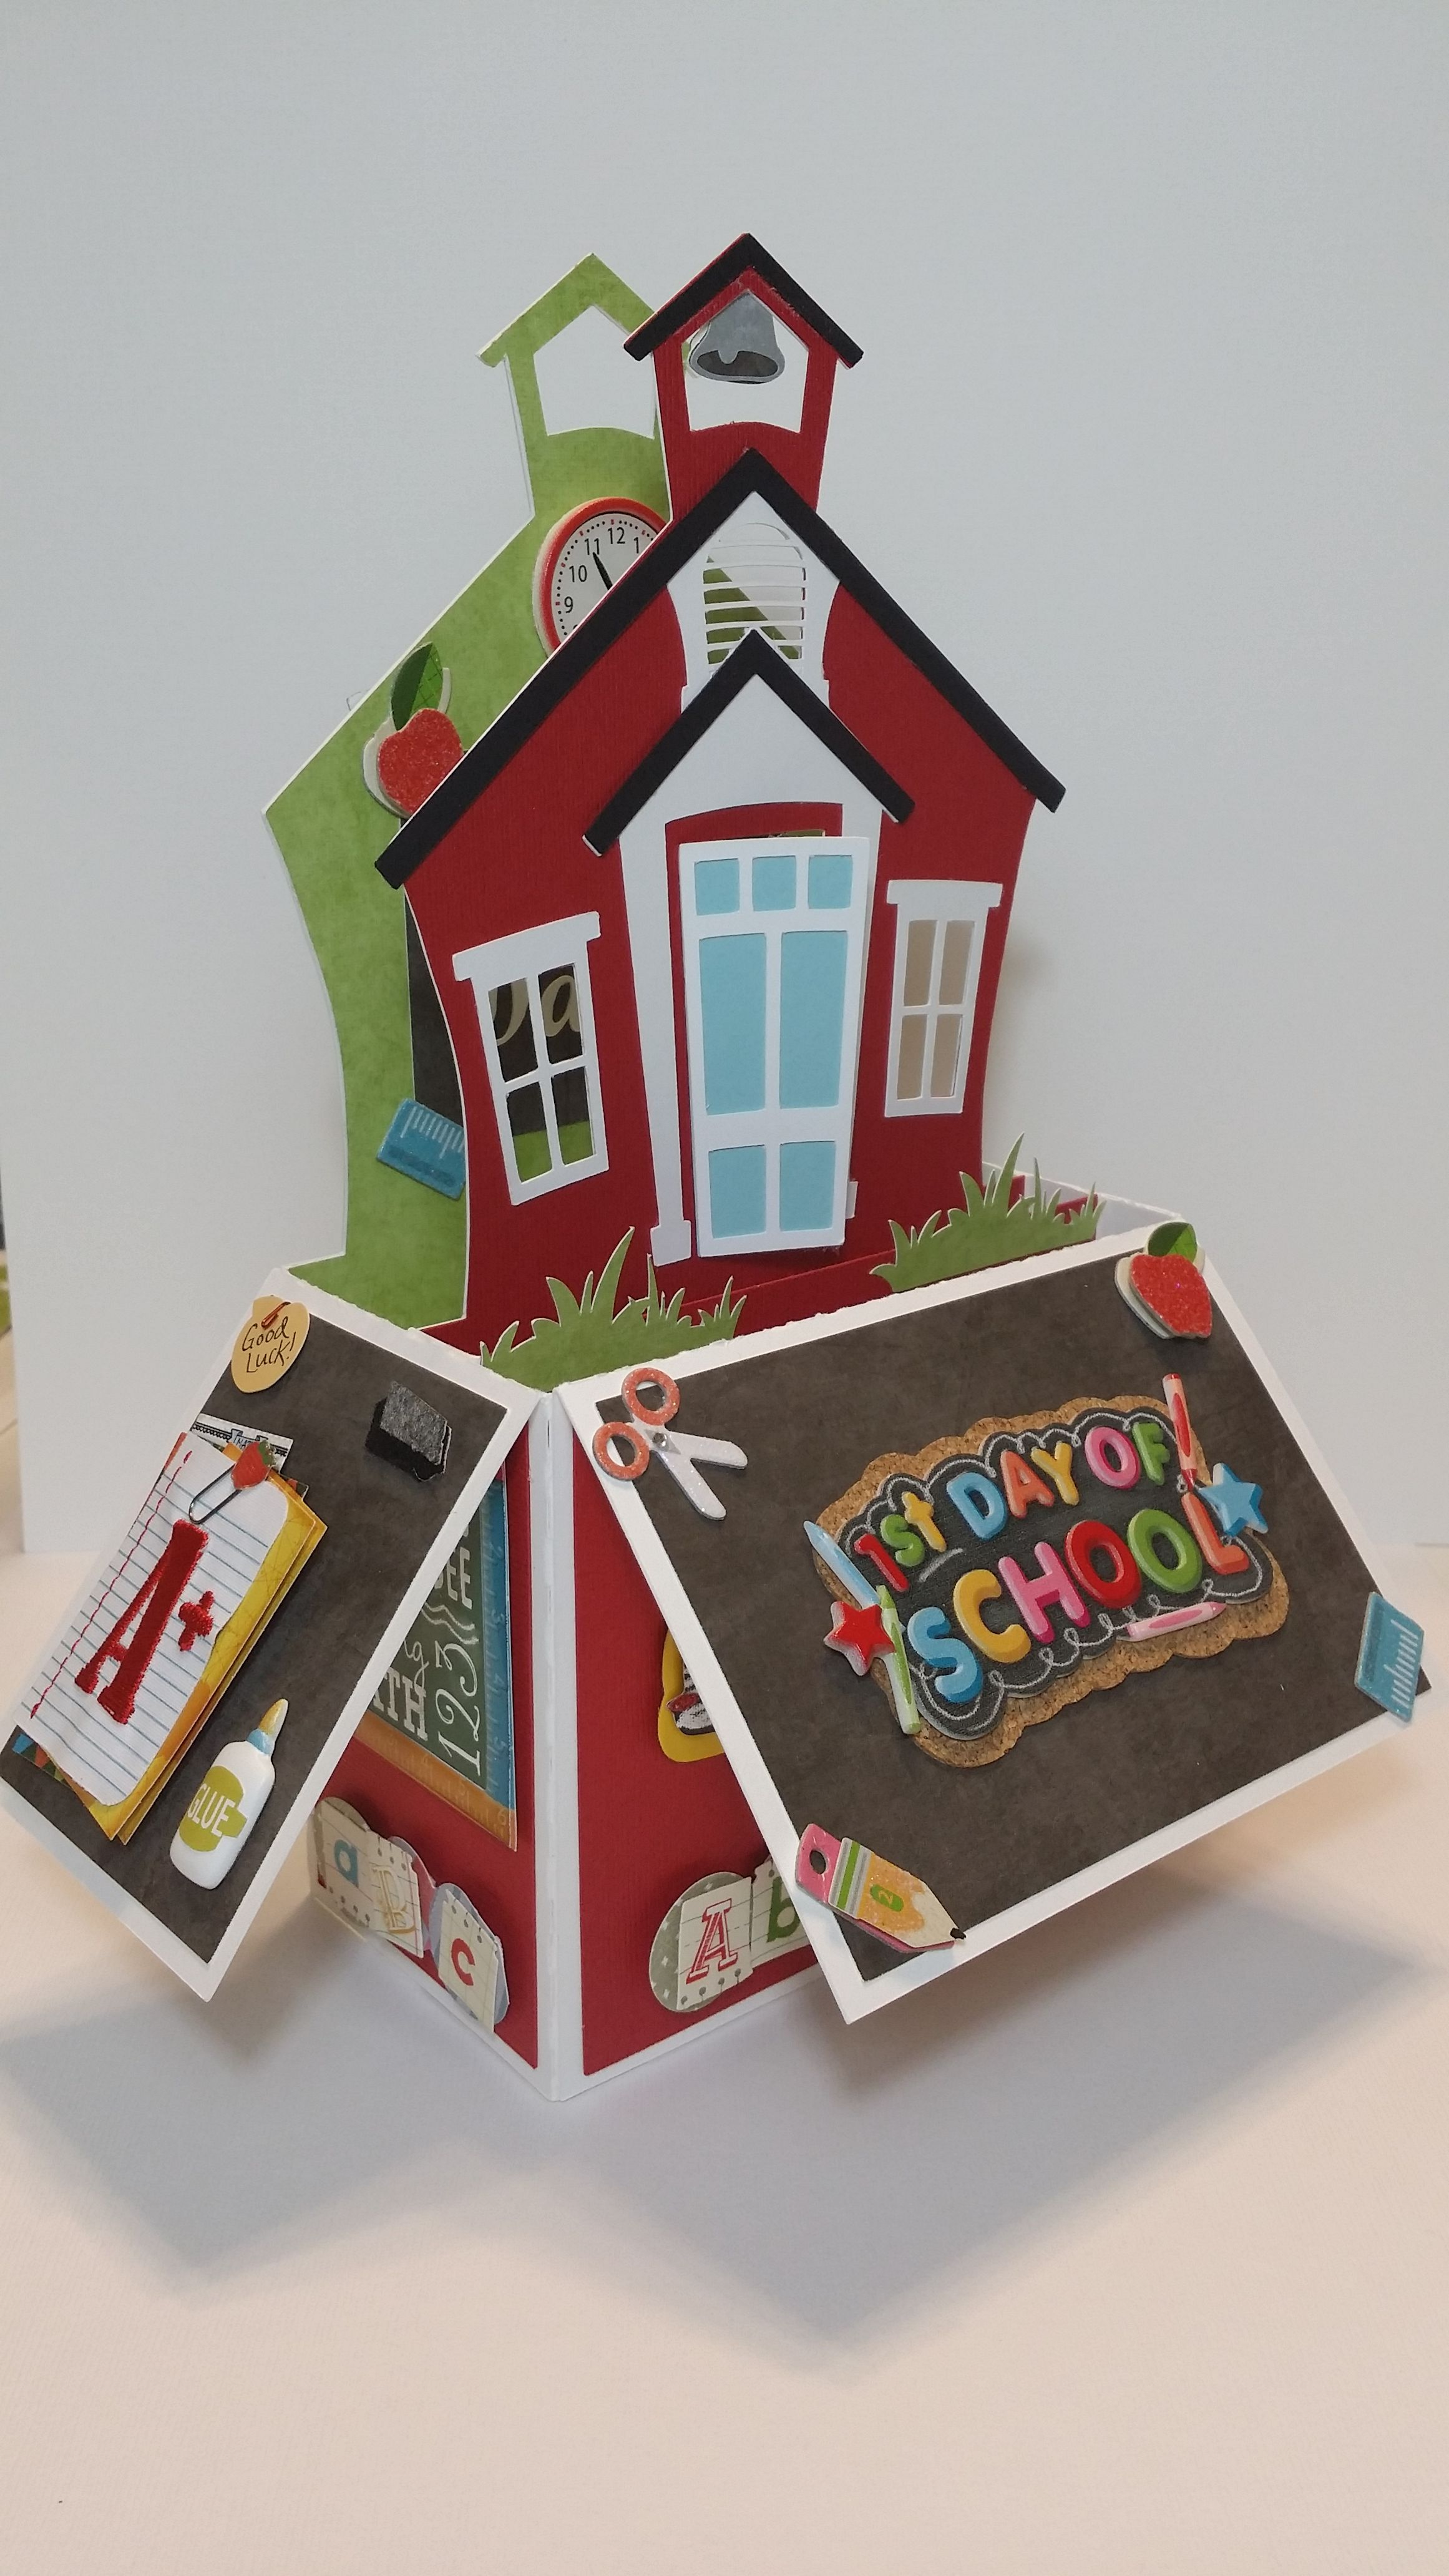 School House Card In A Box Handcrafted By Pryme Dezign Sandy Pry Pop Up Box Cards Card Box Box Cards Tutorial